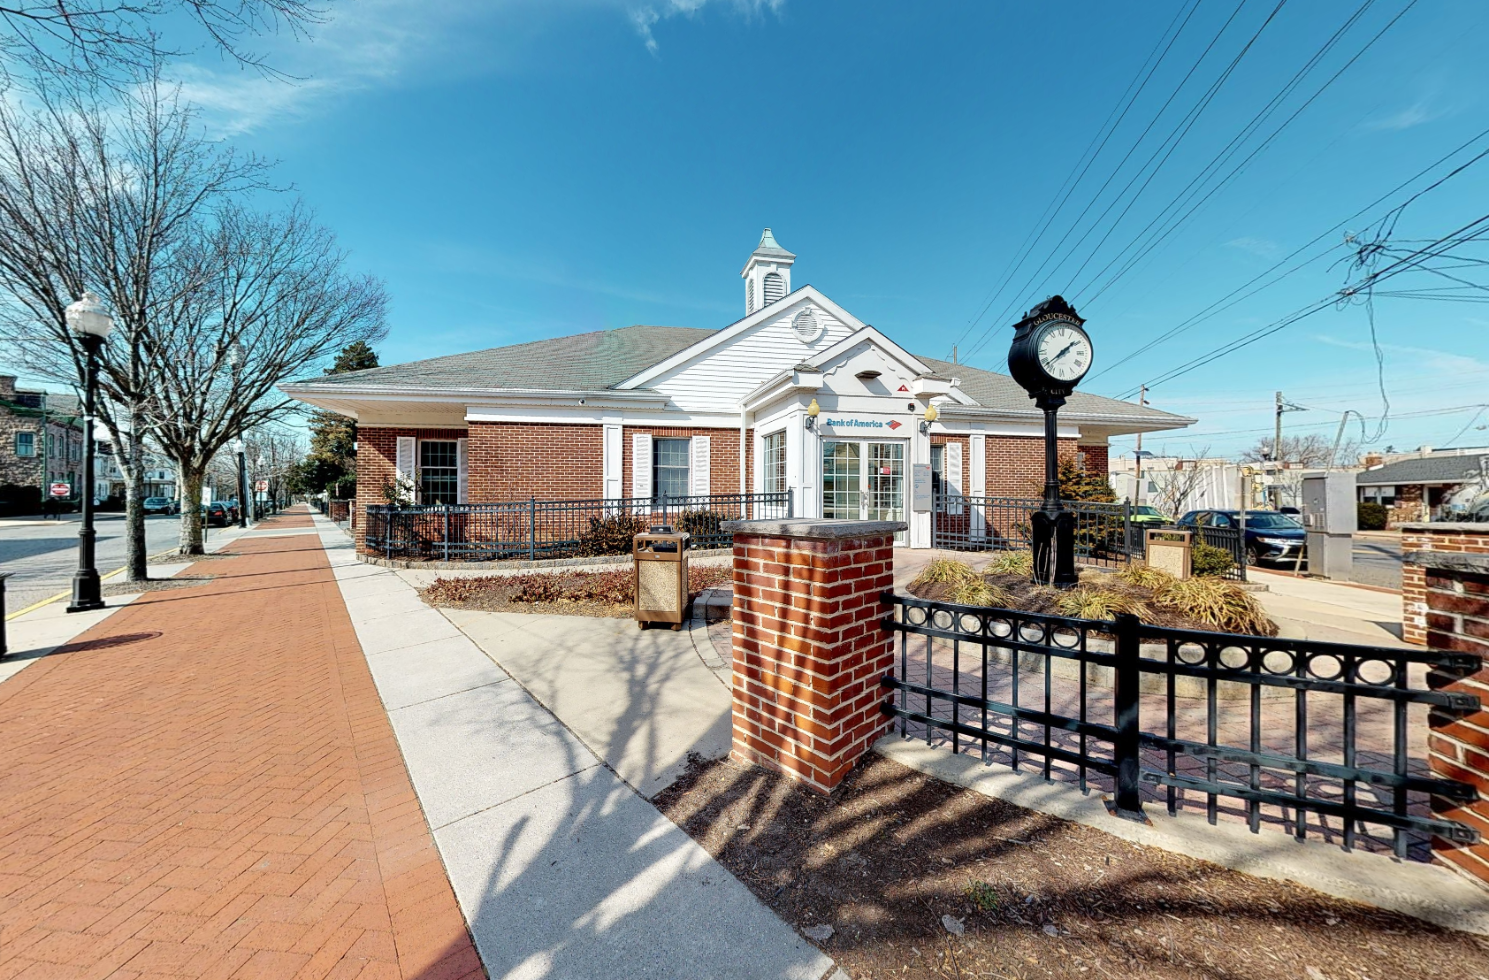 Bank of America financial center with walk-up ATM | 1 N Broadway, Gloucester City, NJ 08030